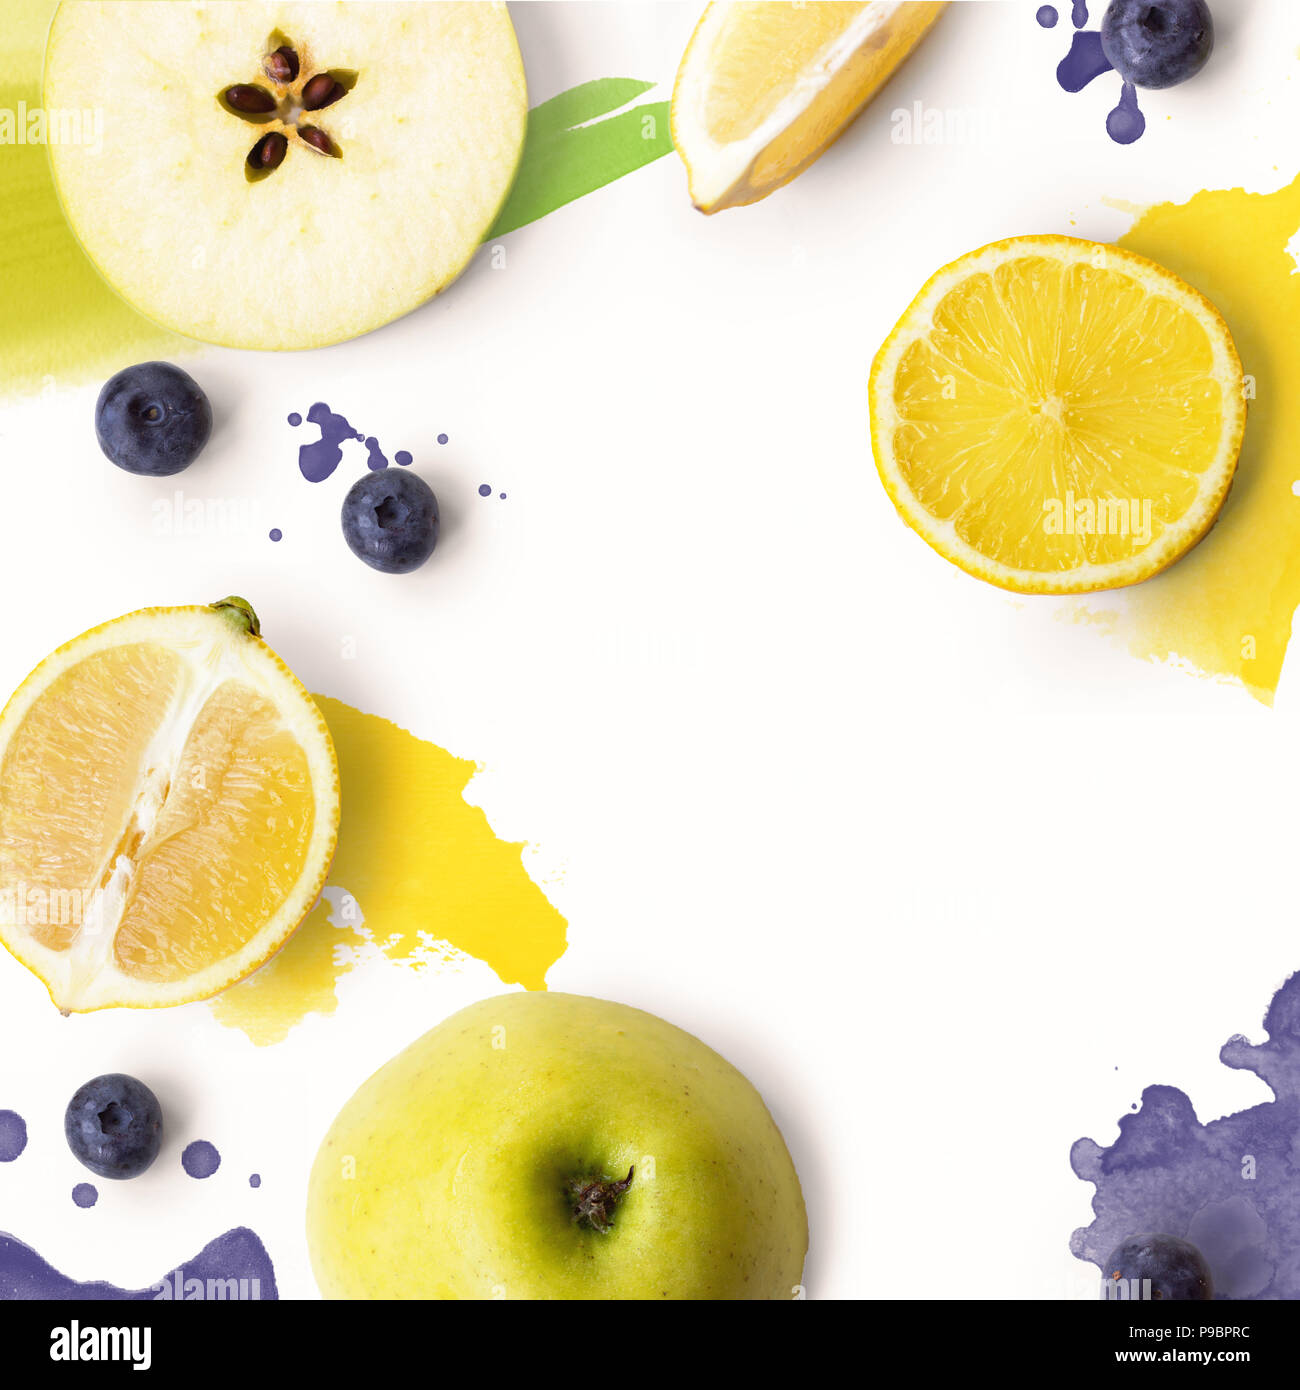 Green apple slices on white background with watercolor splashes; Fruit background - Stock Image